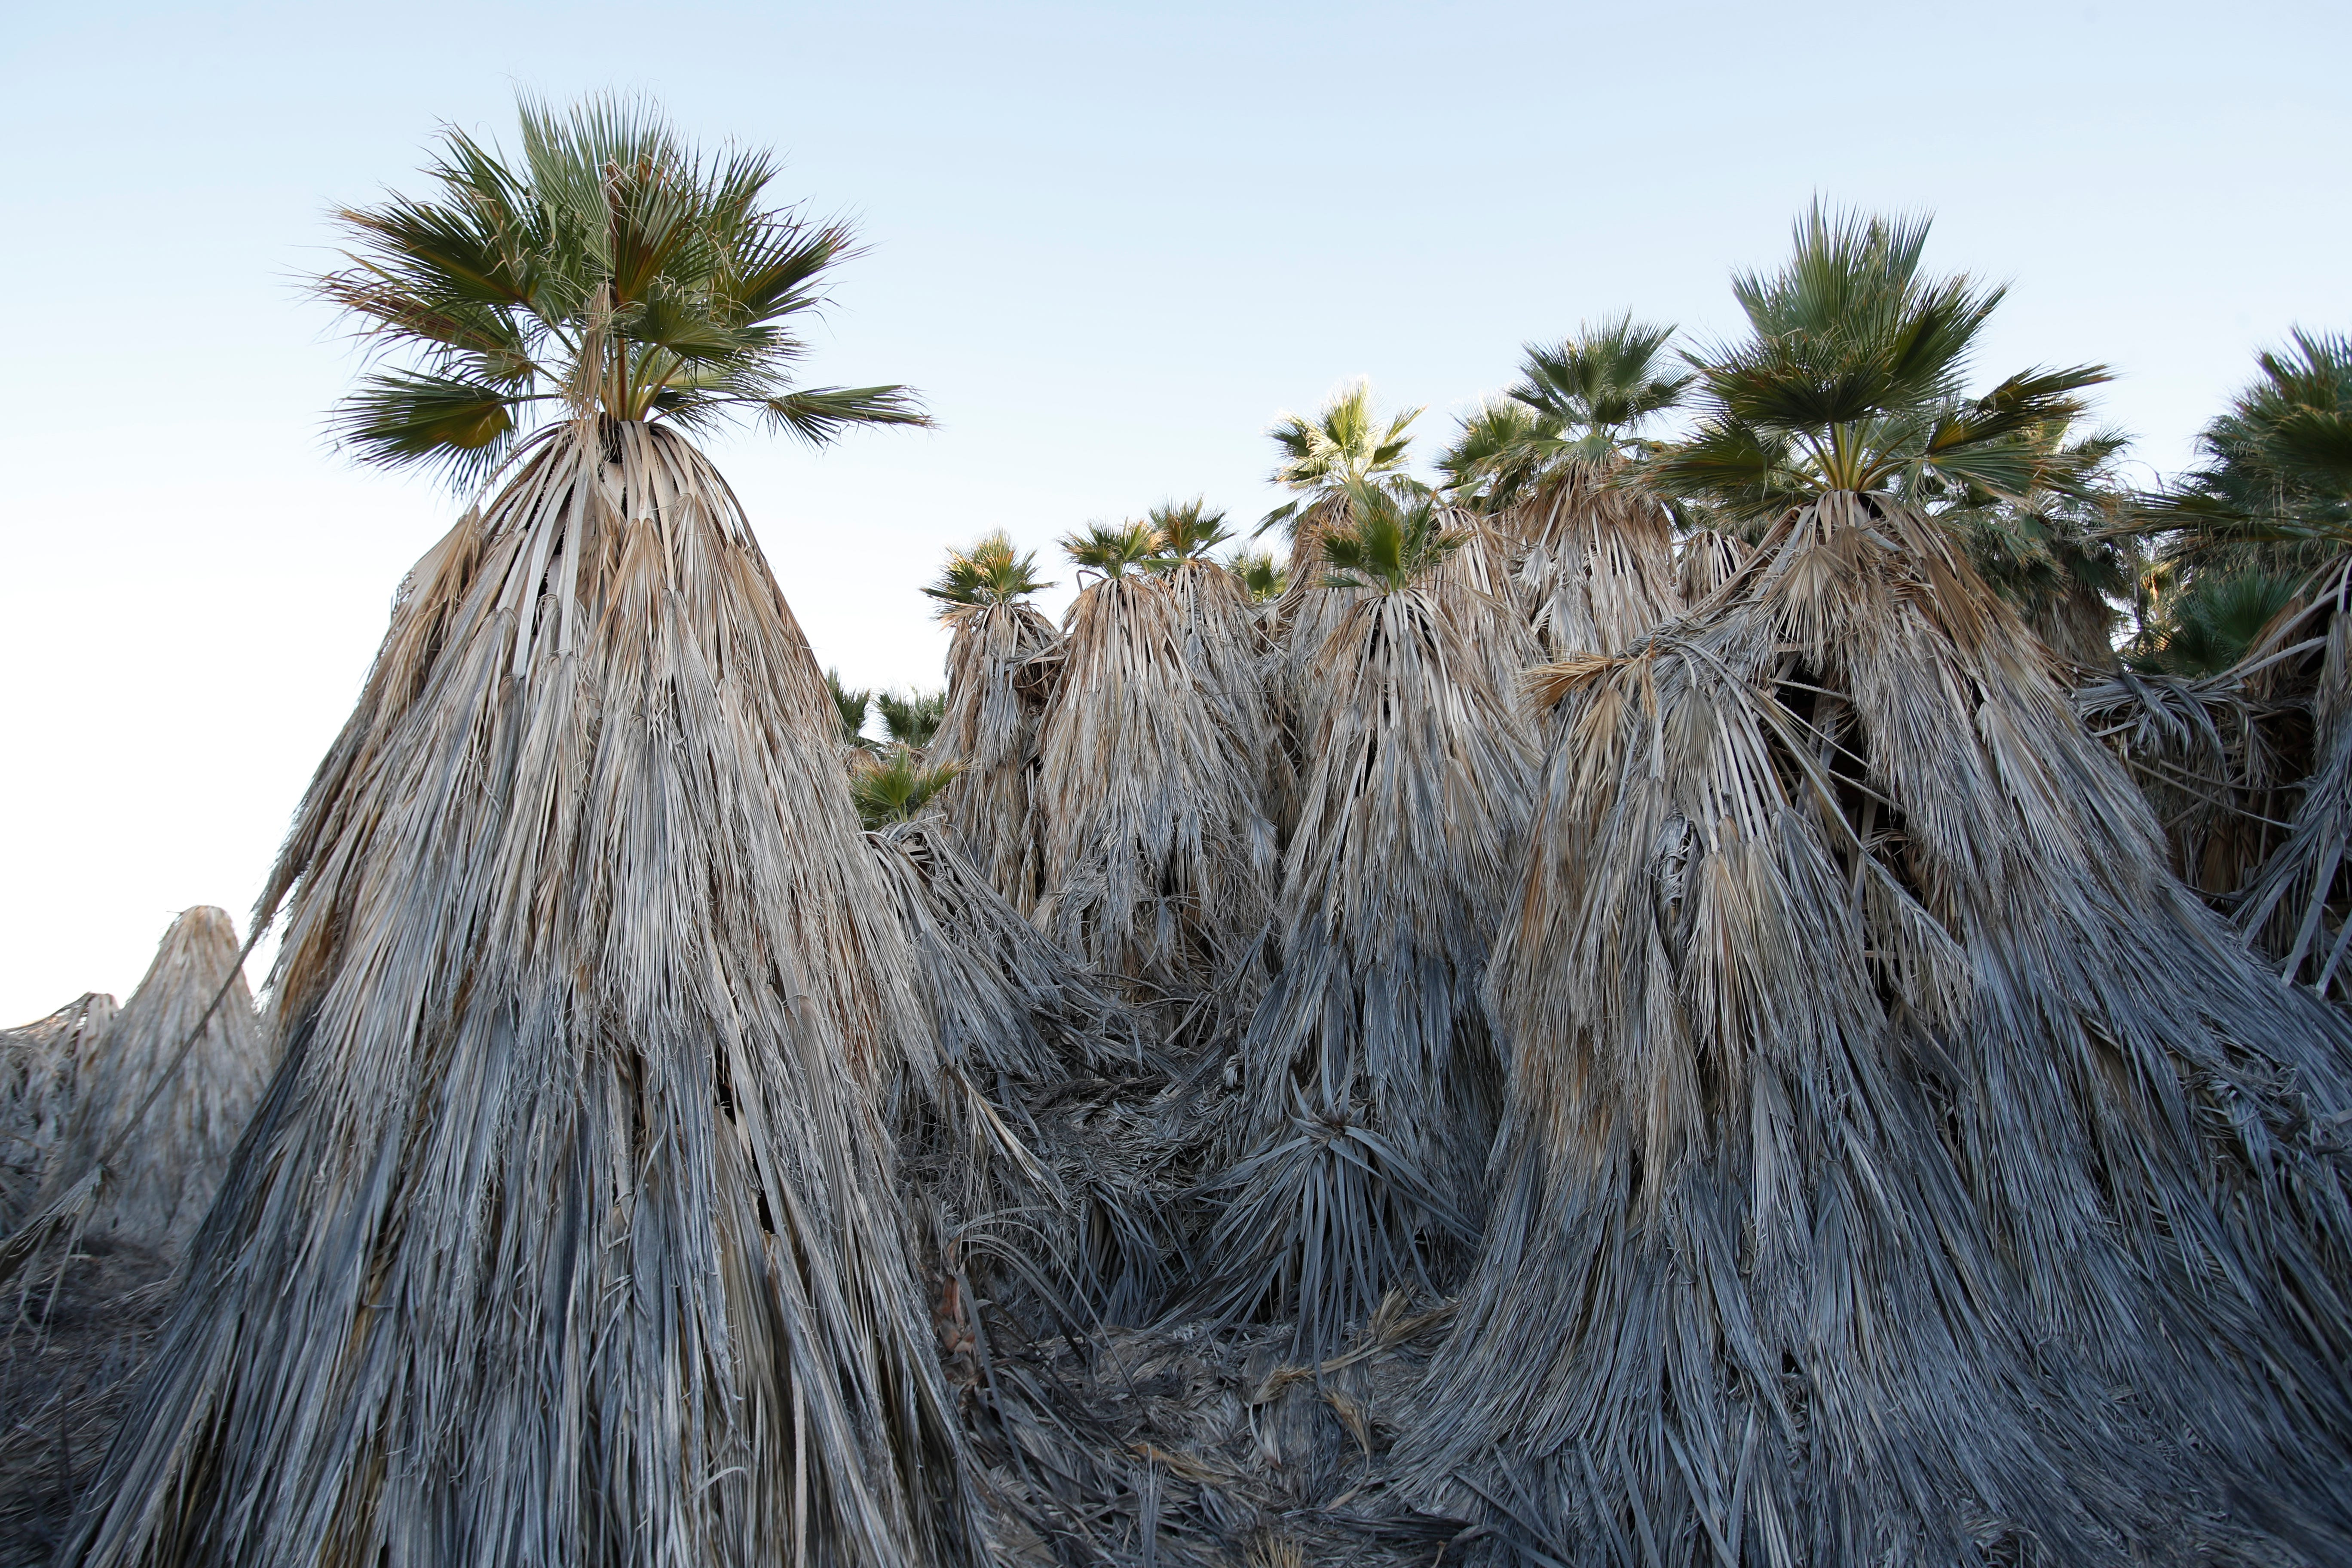 In 1870, a prospector named Charley Clusker claimed to have found remains from a Spanish galleon near Dos Palmas, now a preserve on the Salton Sea's northeastern shore.